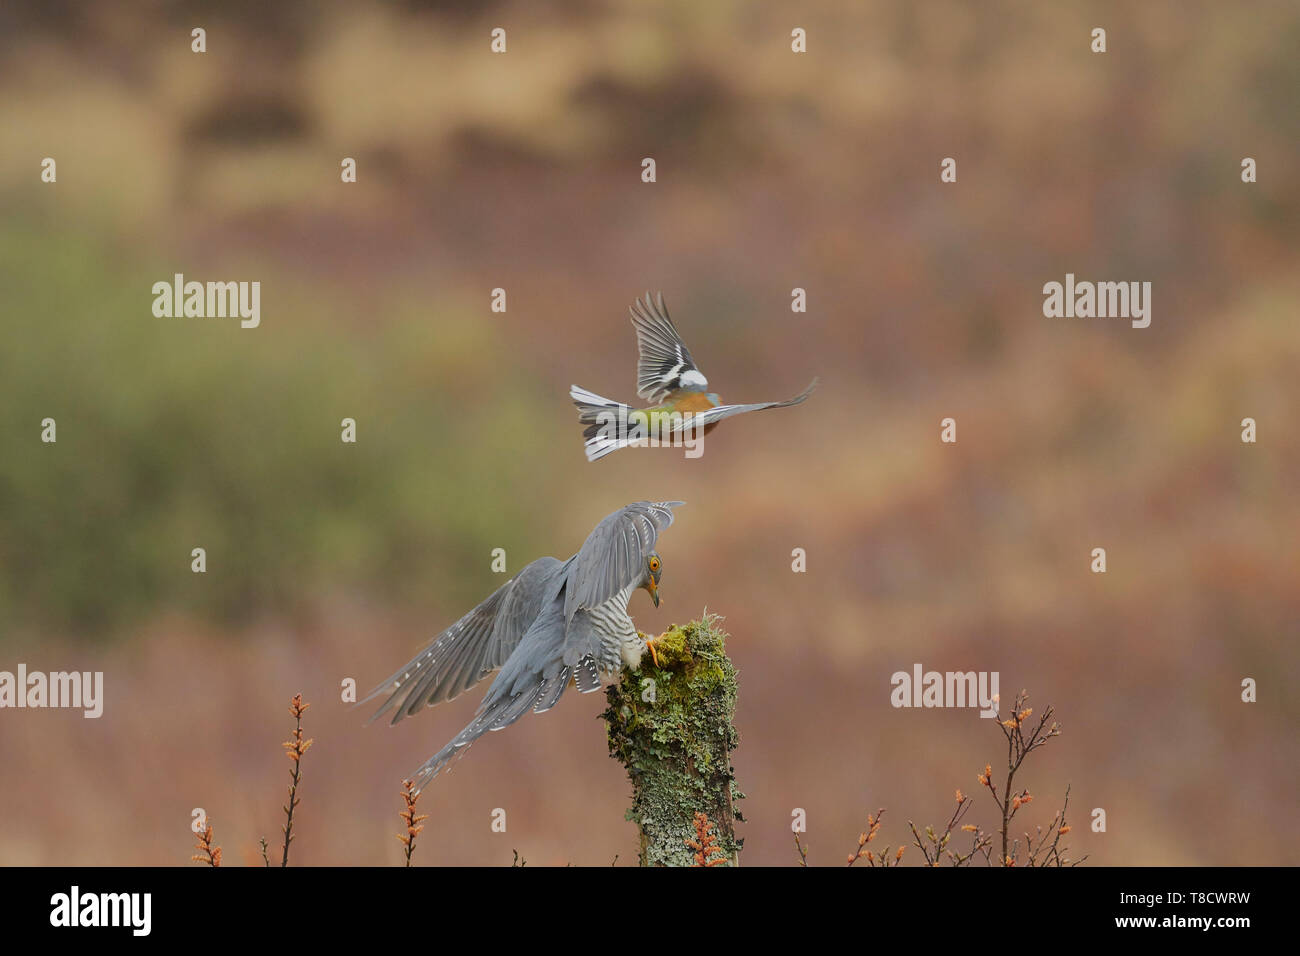 Male Common Cuckoo, Cuculus canorus, mobbed by male Common Chaffinch, Fringilla coelebs, Dumfries and Galloway, Scotland, UK - Stock Image